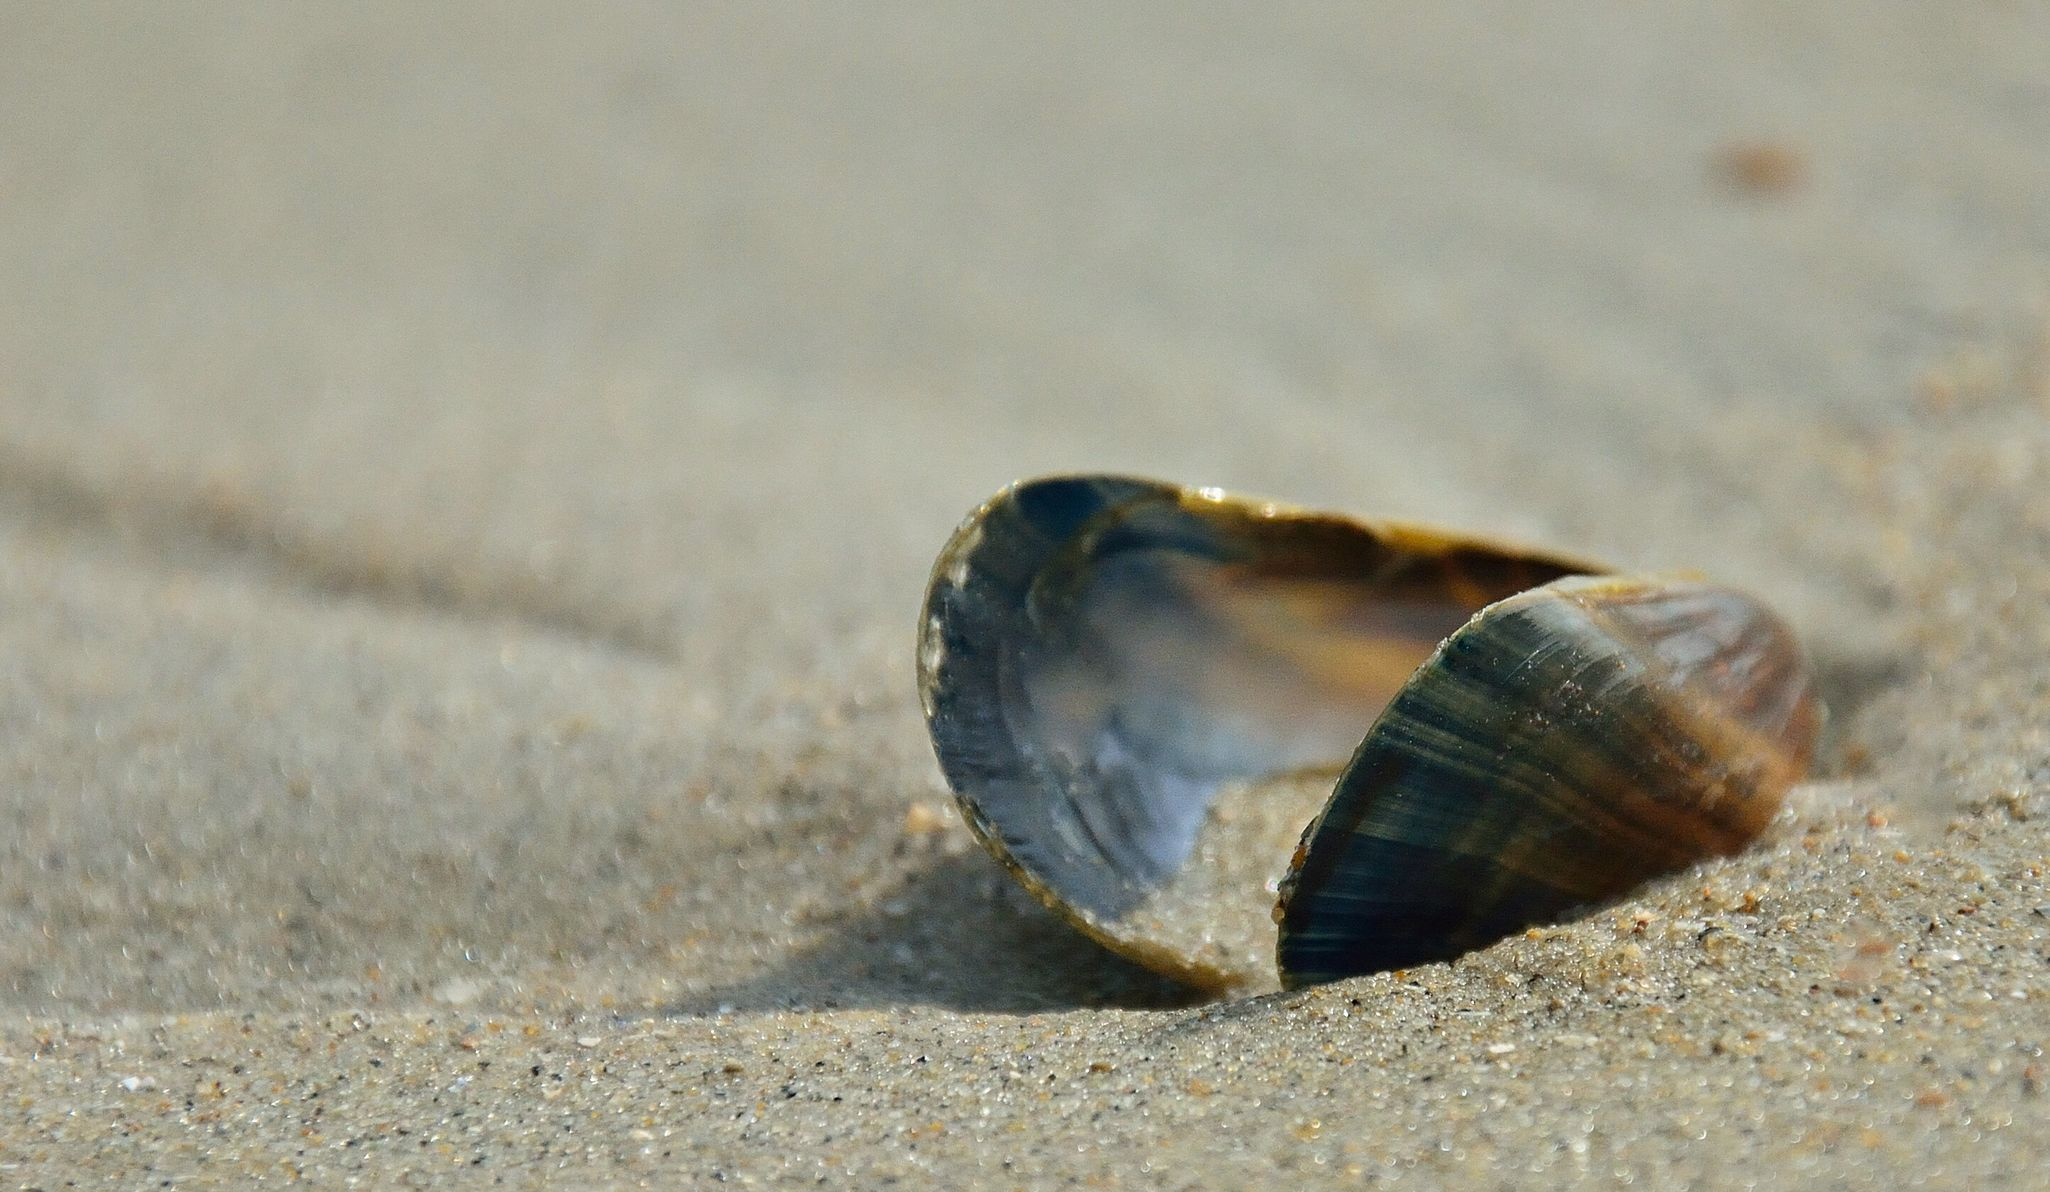 Mosselschelp Cadzand Zeeland Holland Animal Themes Sand One Animal Animals In The Wild Nature Wildlife Beach Close-up Day No People Outdoors Fragility Beauty In Nature Sea Life Holland Clam Clamshell Shell Simple Photography Pure Nature Bokeh Photography Zeeland